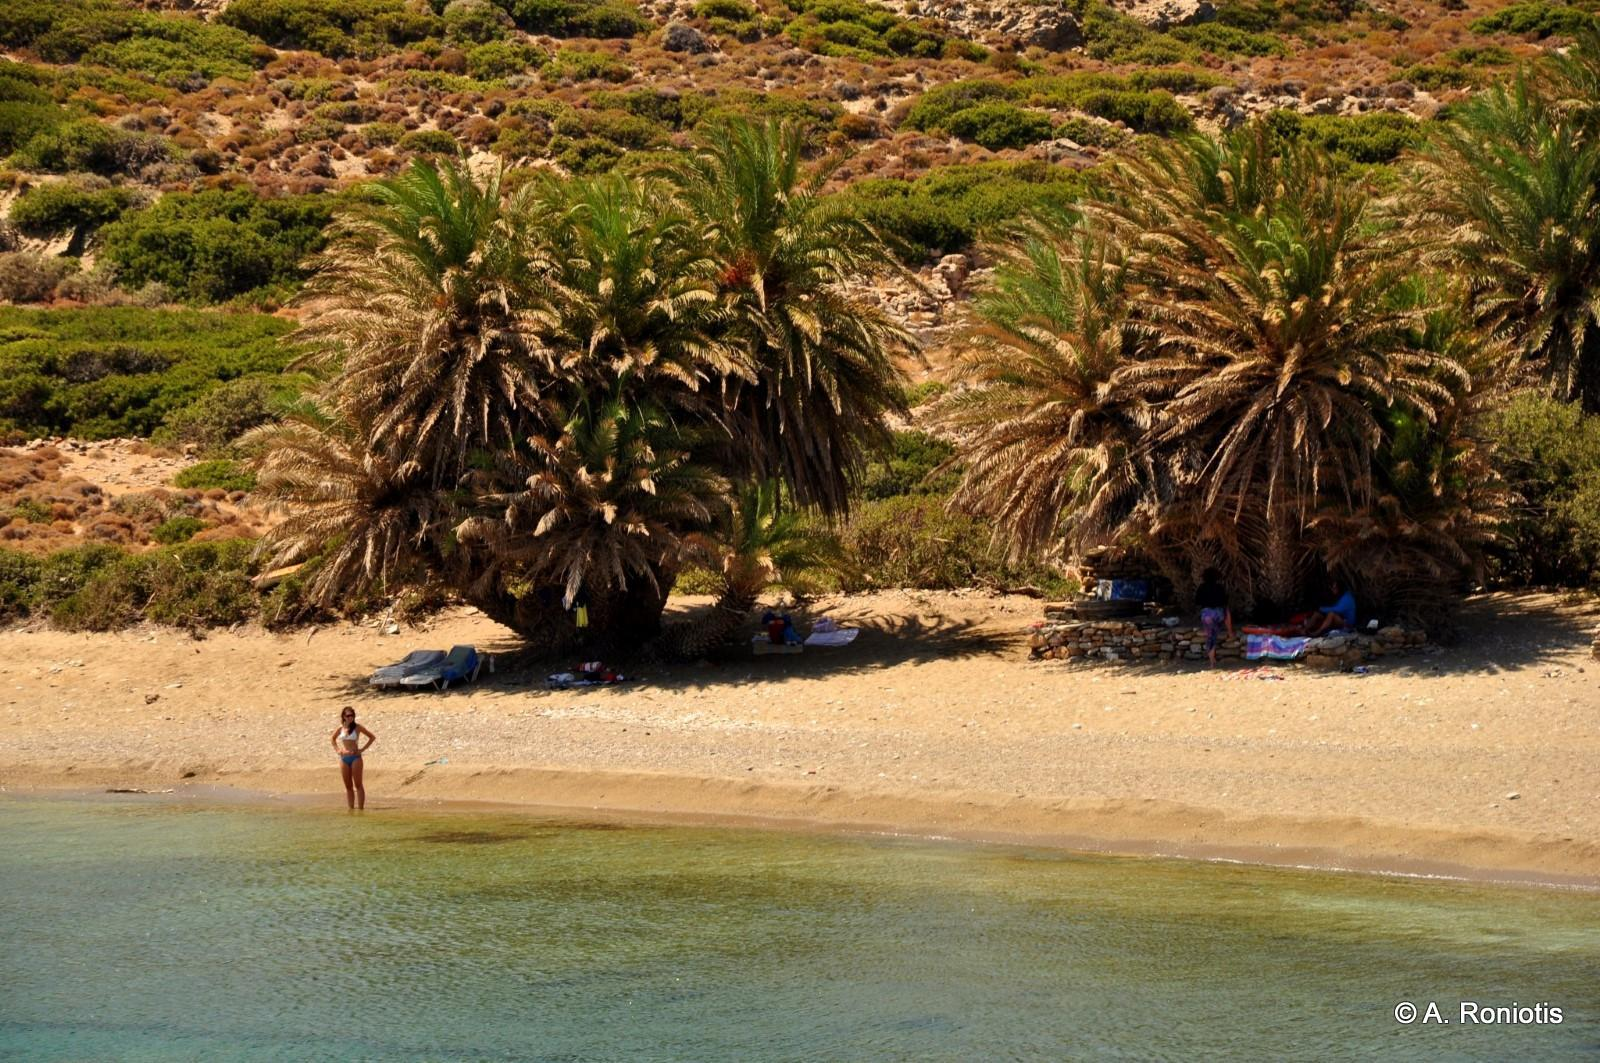 beaches with palm trees travel guide for island crete greece